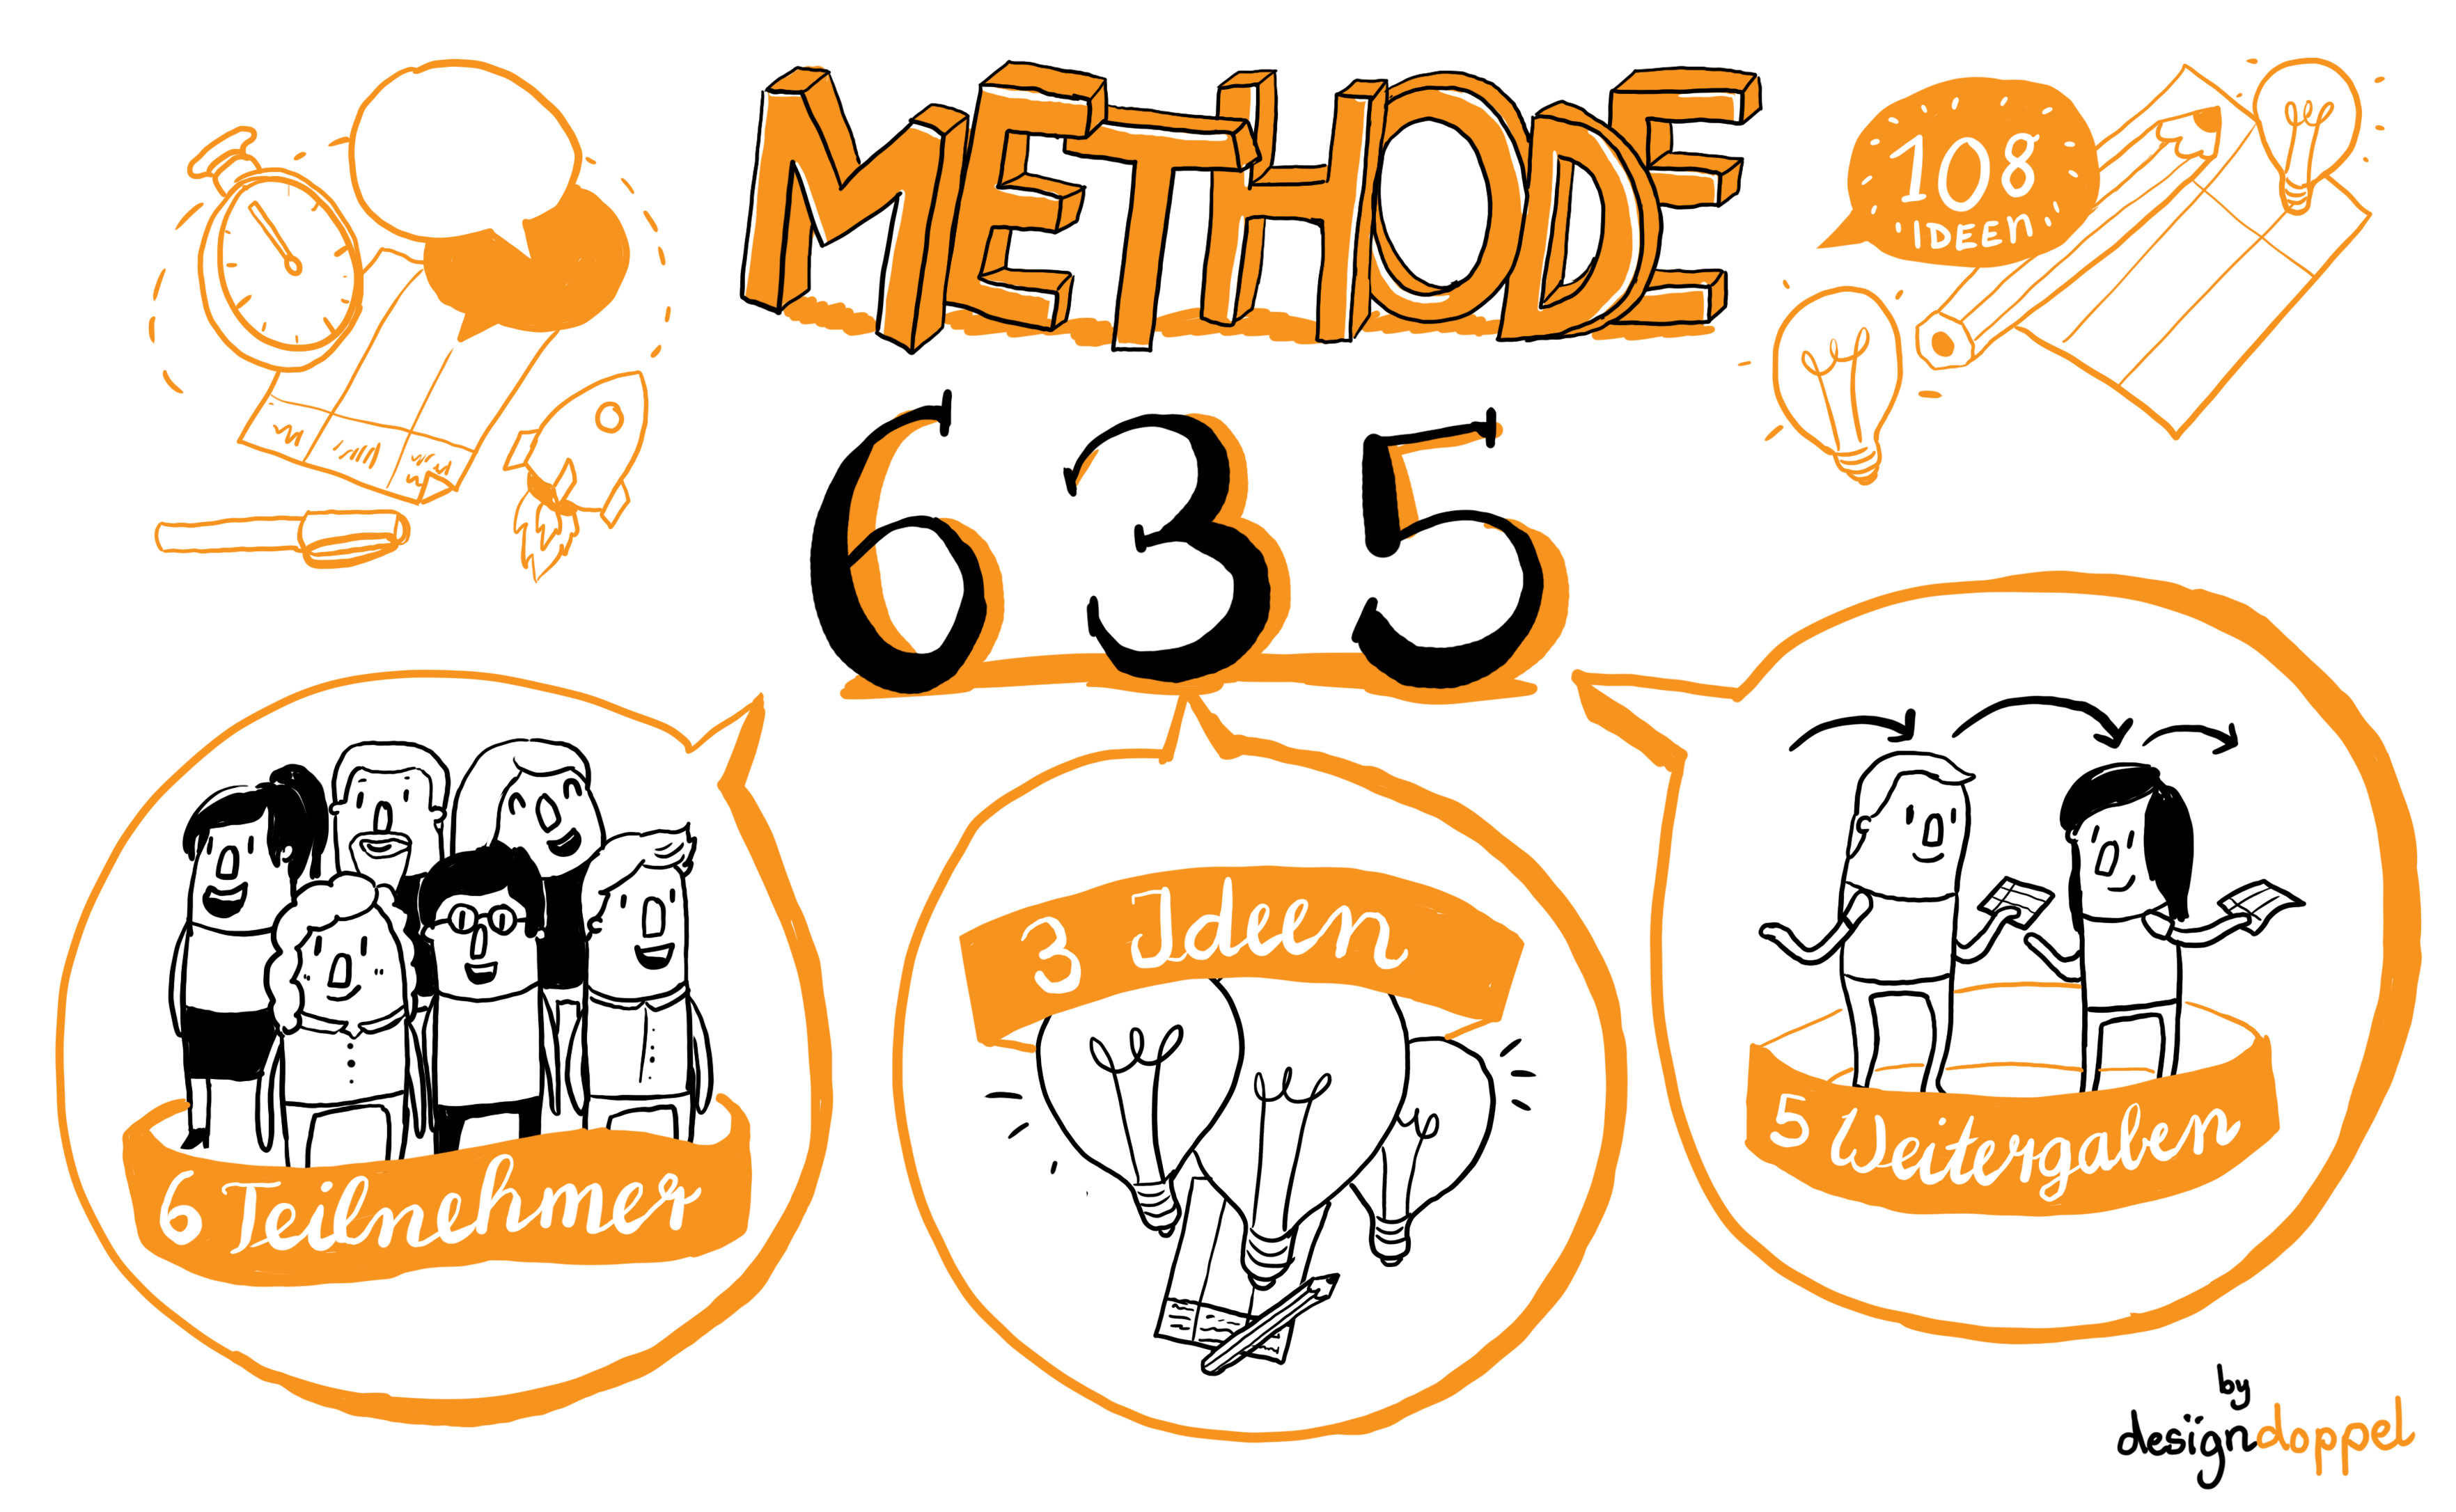 Methode 635 Illustration Designdoppel Graphic Recording